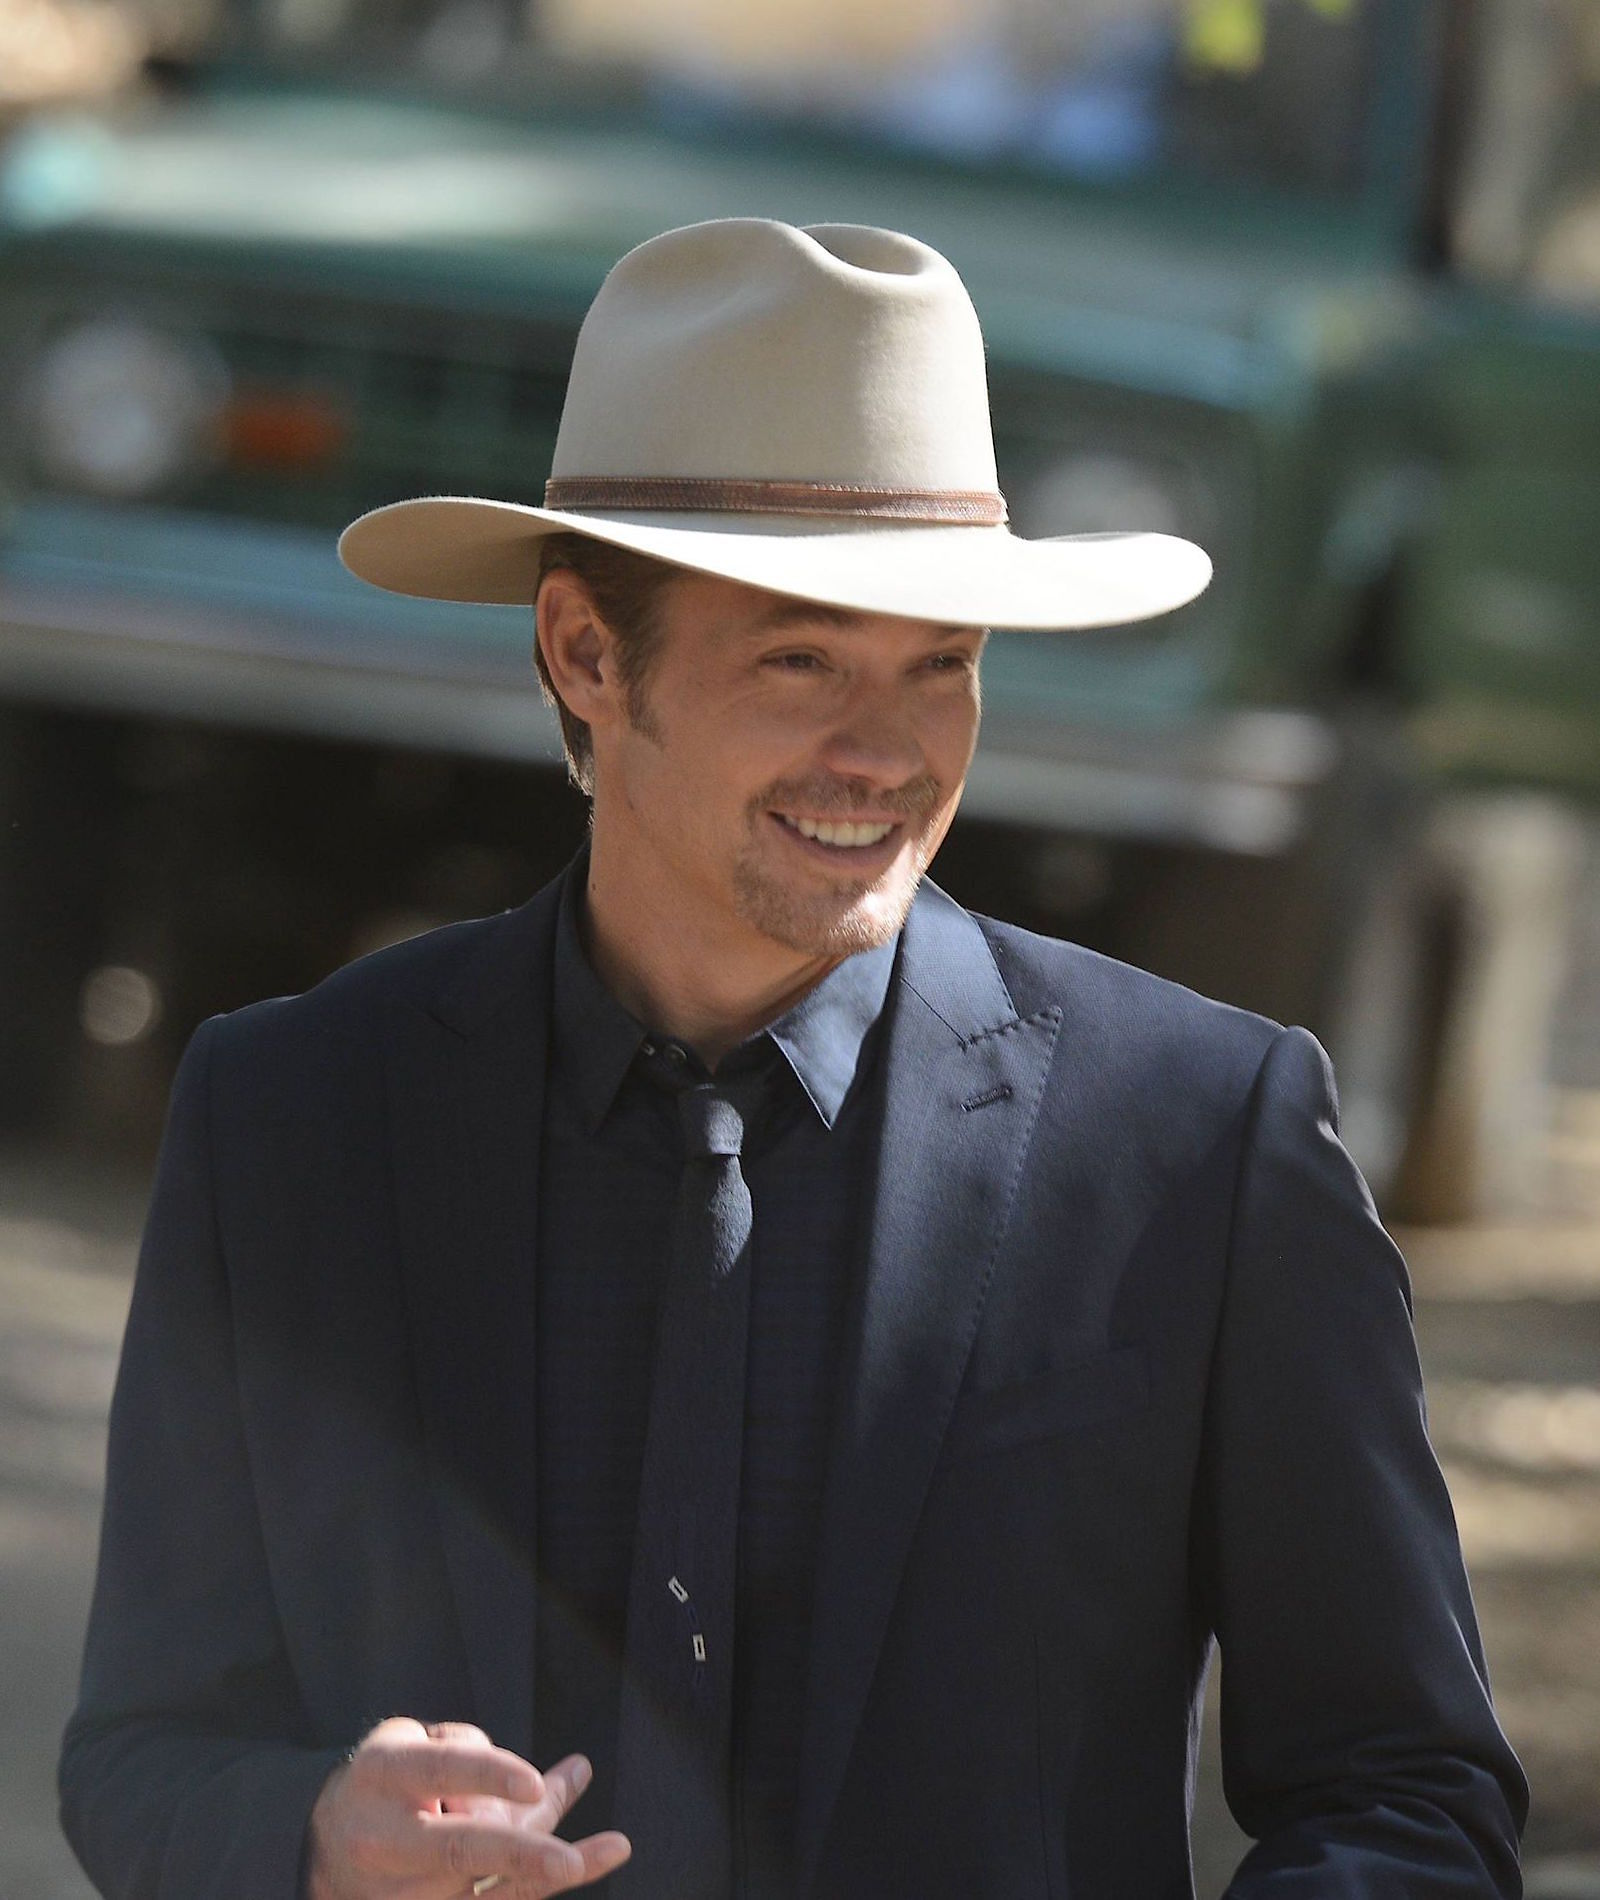 Justified Season 6 Raylan Givens In All Blue Bamf Style